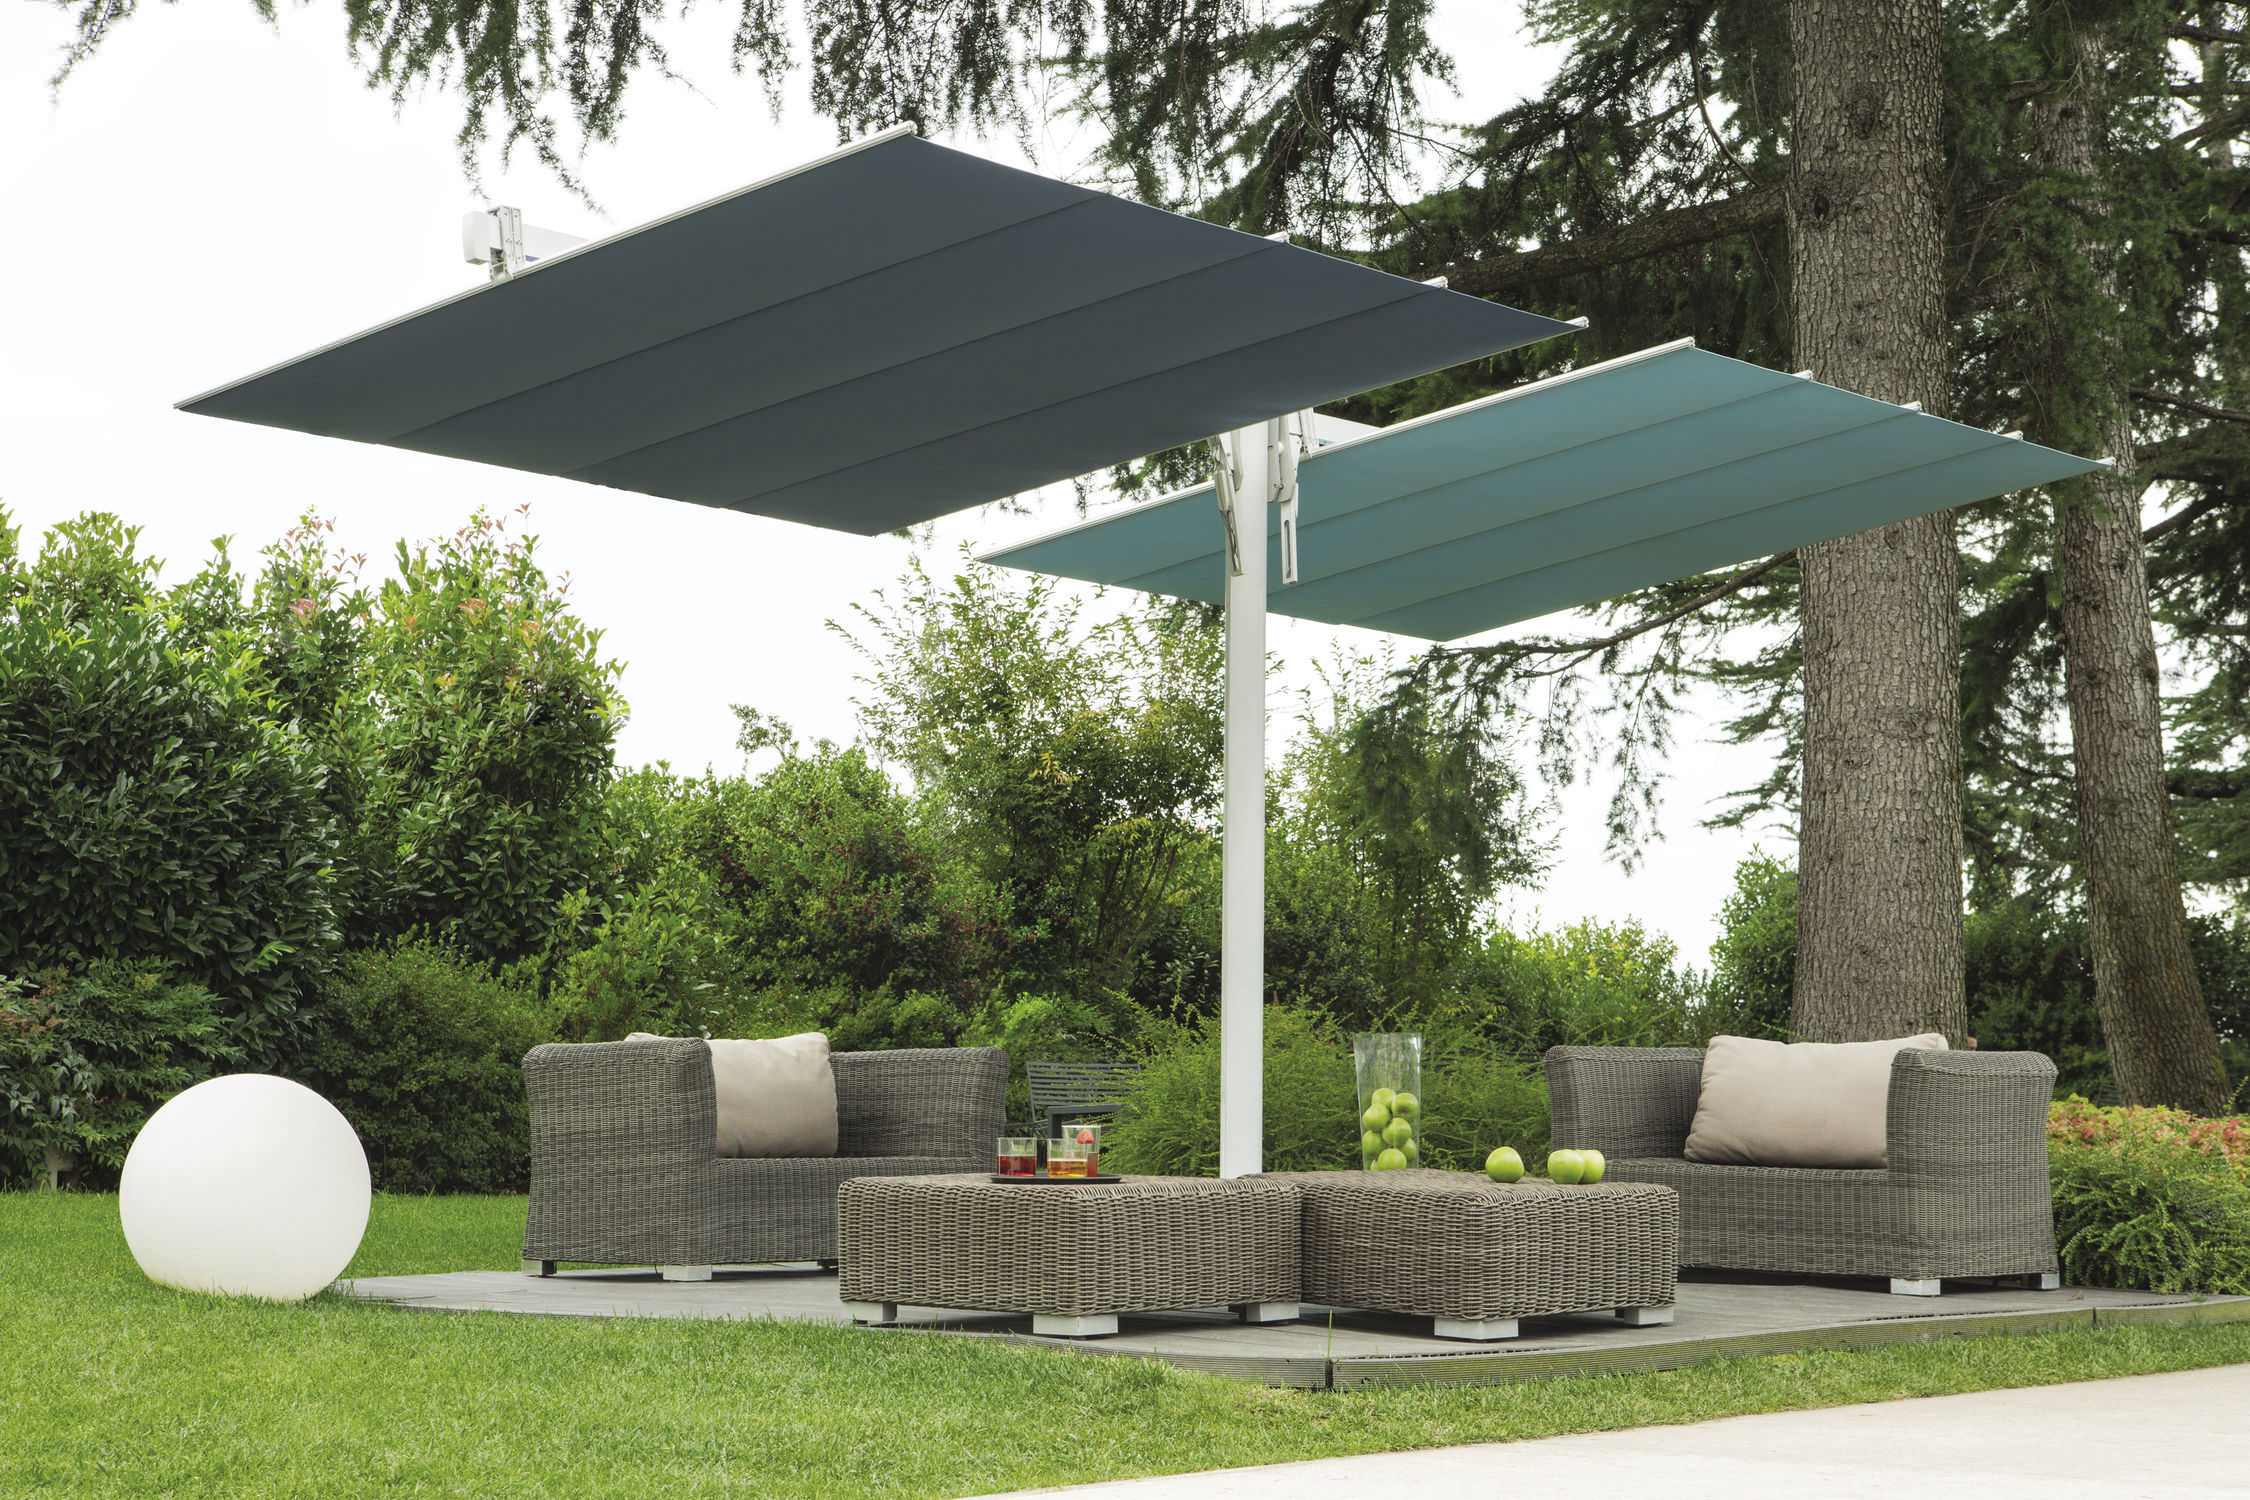 ... Contract patio umbrella / fabric / aluminum / swiveling FLEXY TWIN FIM ... & Contract patio umbrella / fabric / aluminum / swiveling - FLEXY ...